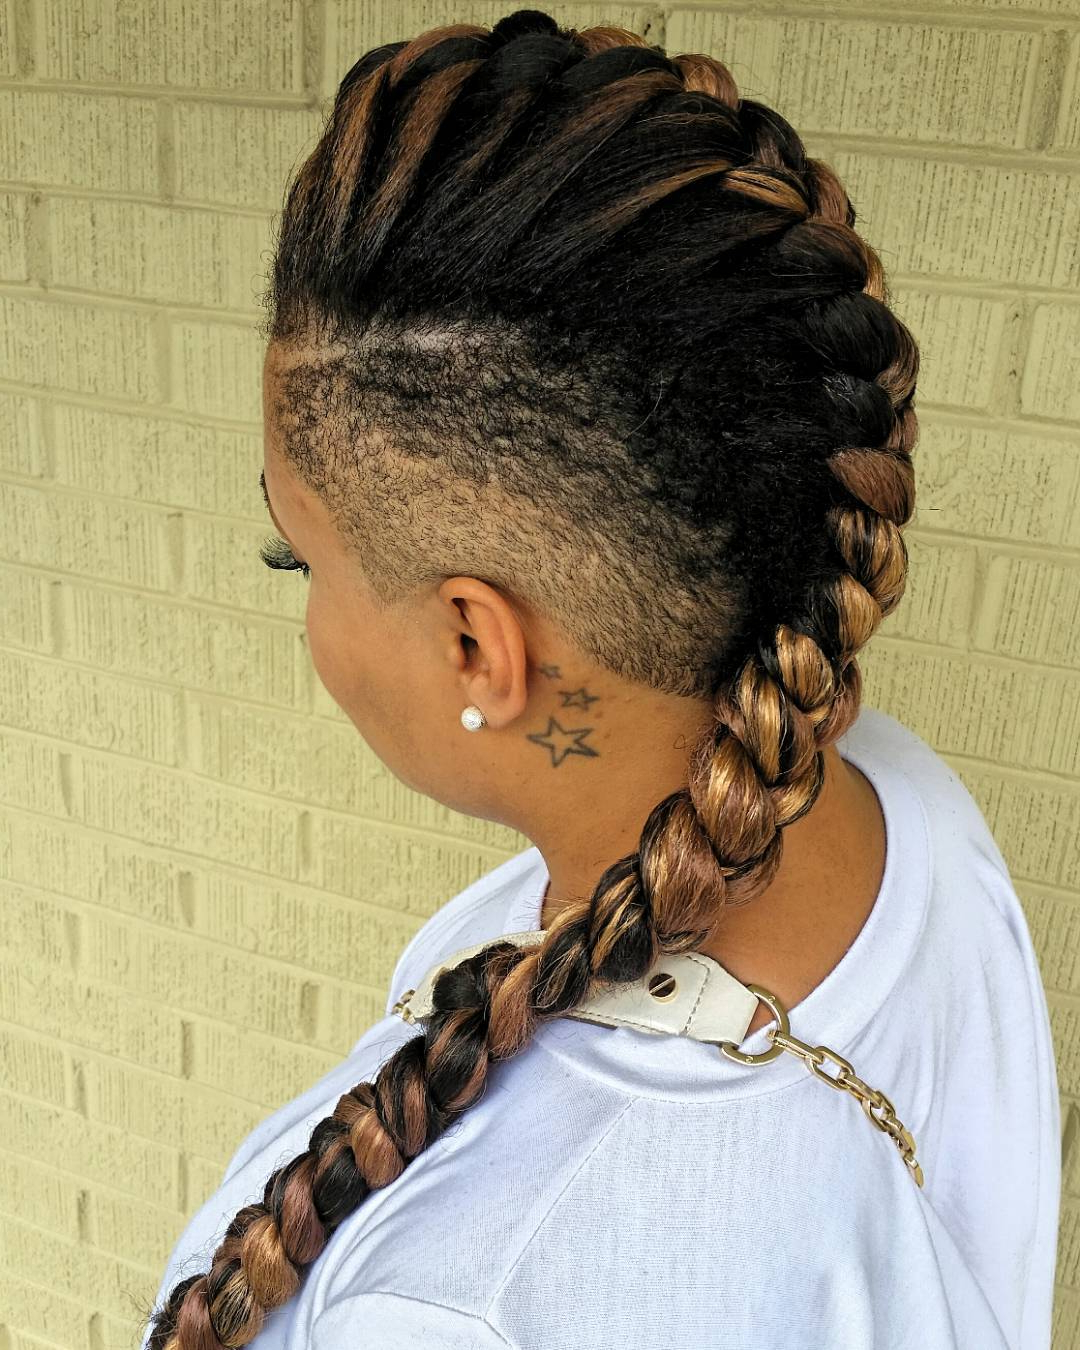 Trendy Box Braids Mohawk Hairstyles Within Mohawk Braids: 12 Braided Mohawk Hairstyles That Get Attention (View 6 of 20)